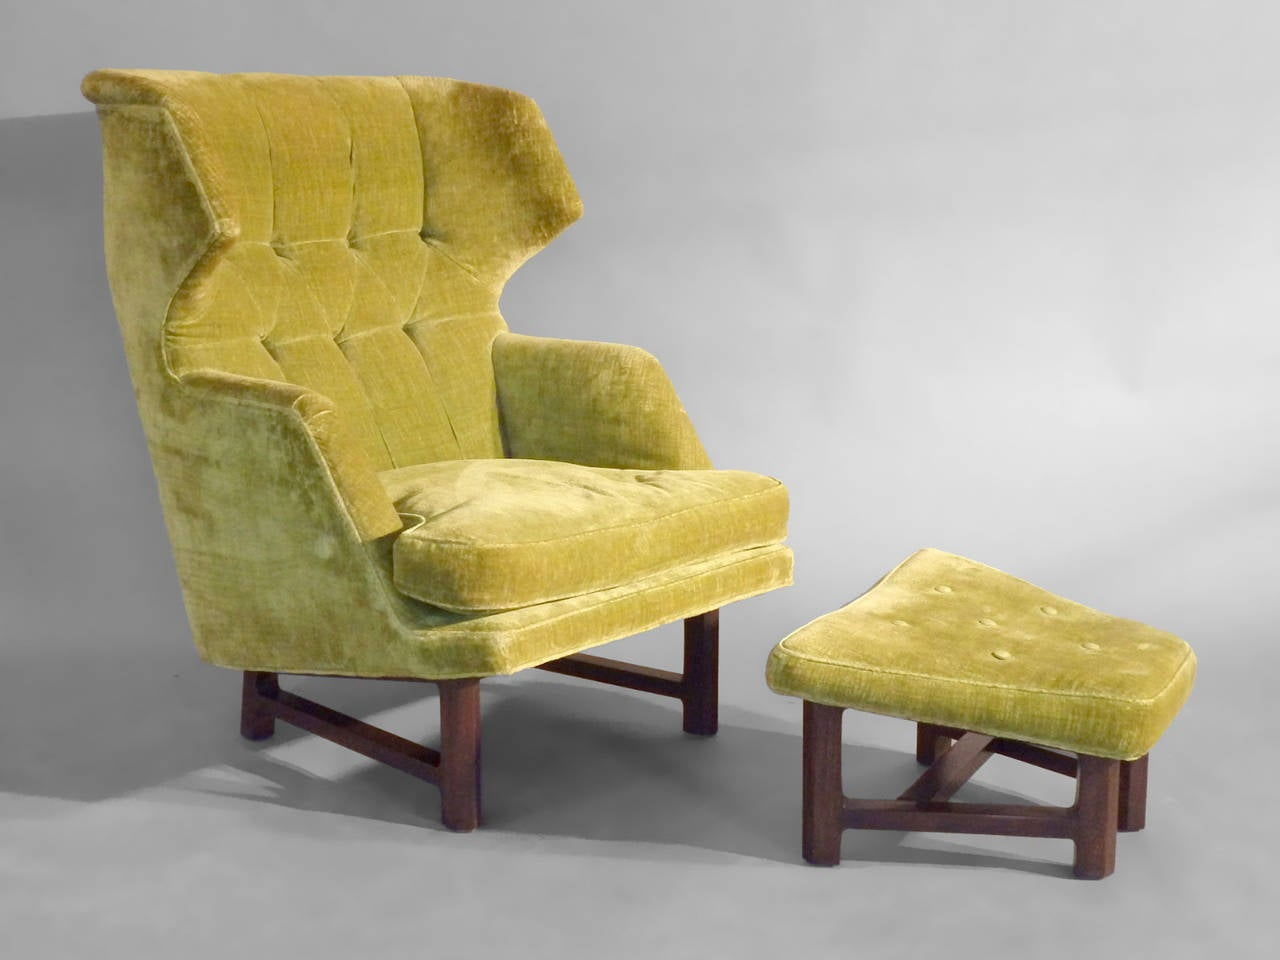 Best Edward Wormley Lounge Chair with Ottoman at 1stdibs